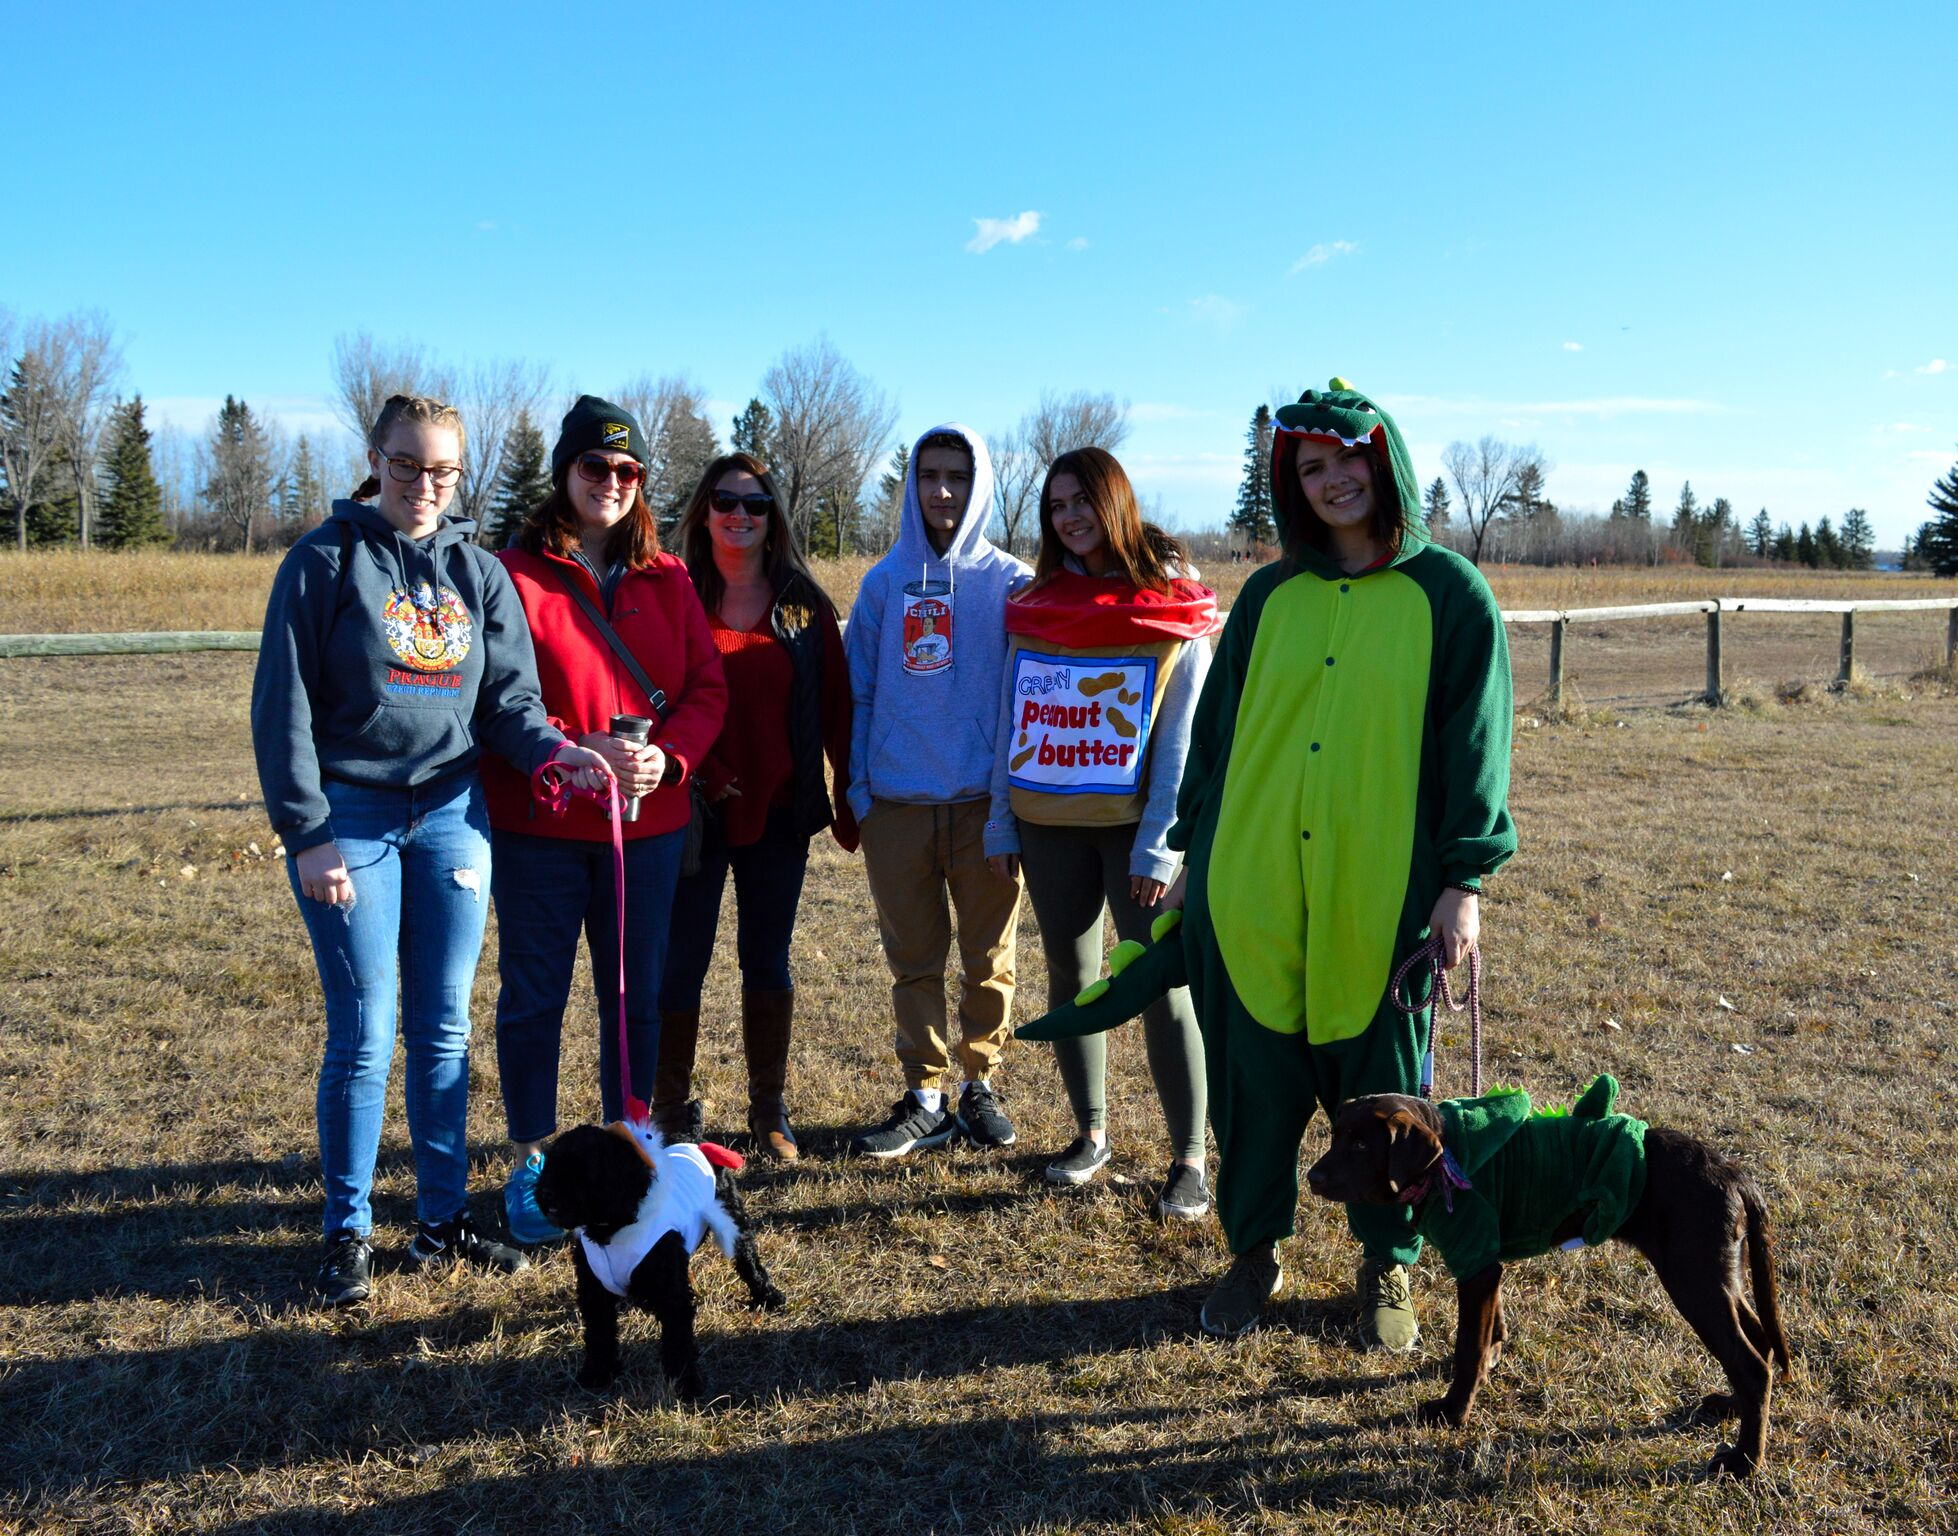 First place prize winners: matching dinosaurs, posing with friends at 2018 Tails of Help Howloween Dog walk